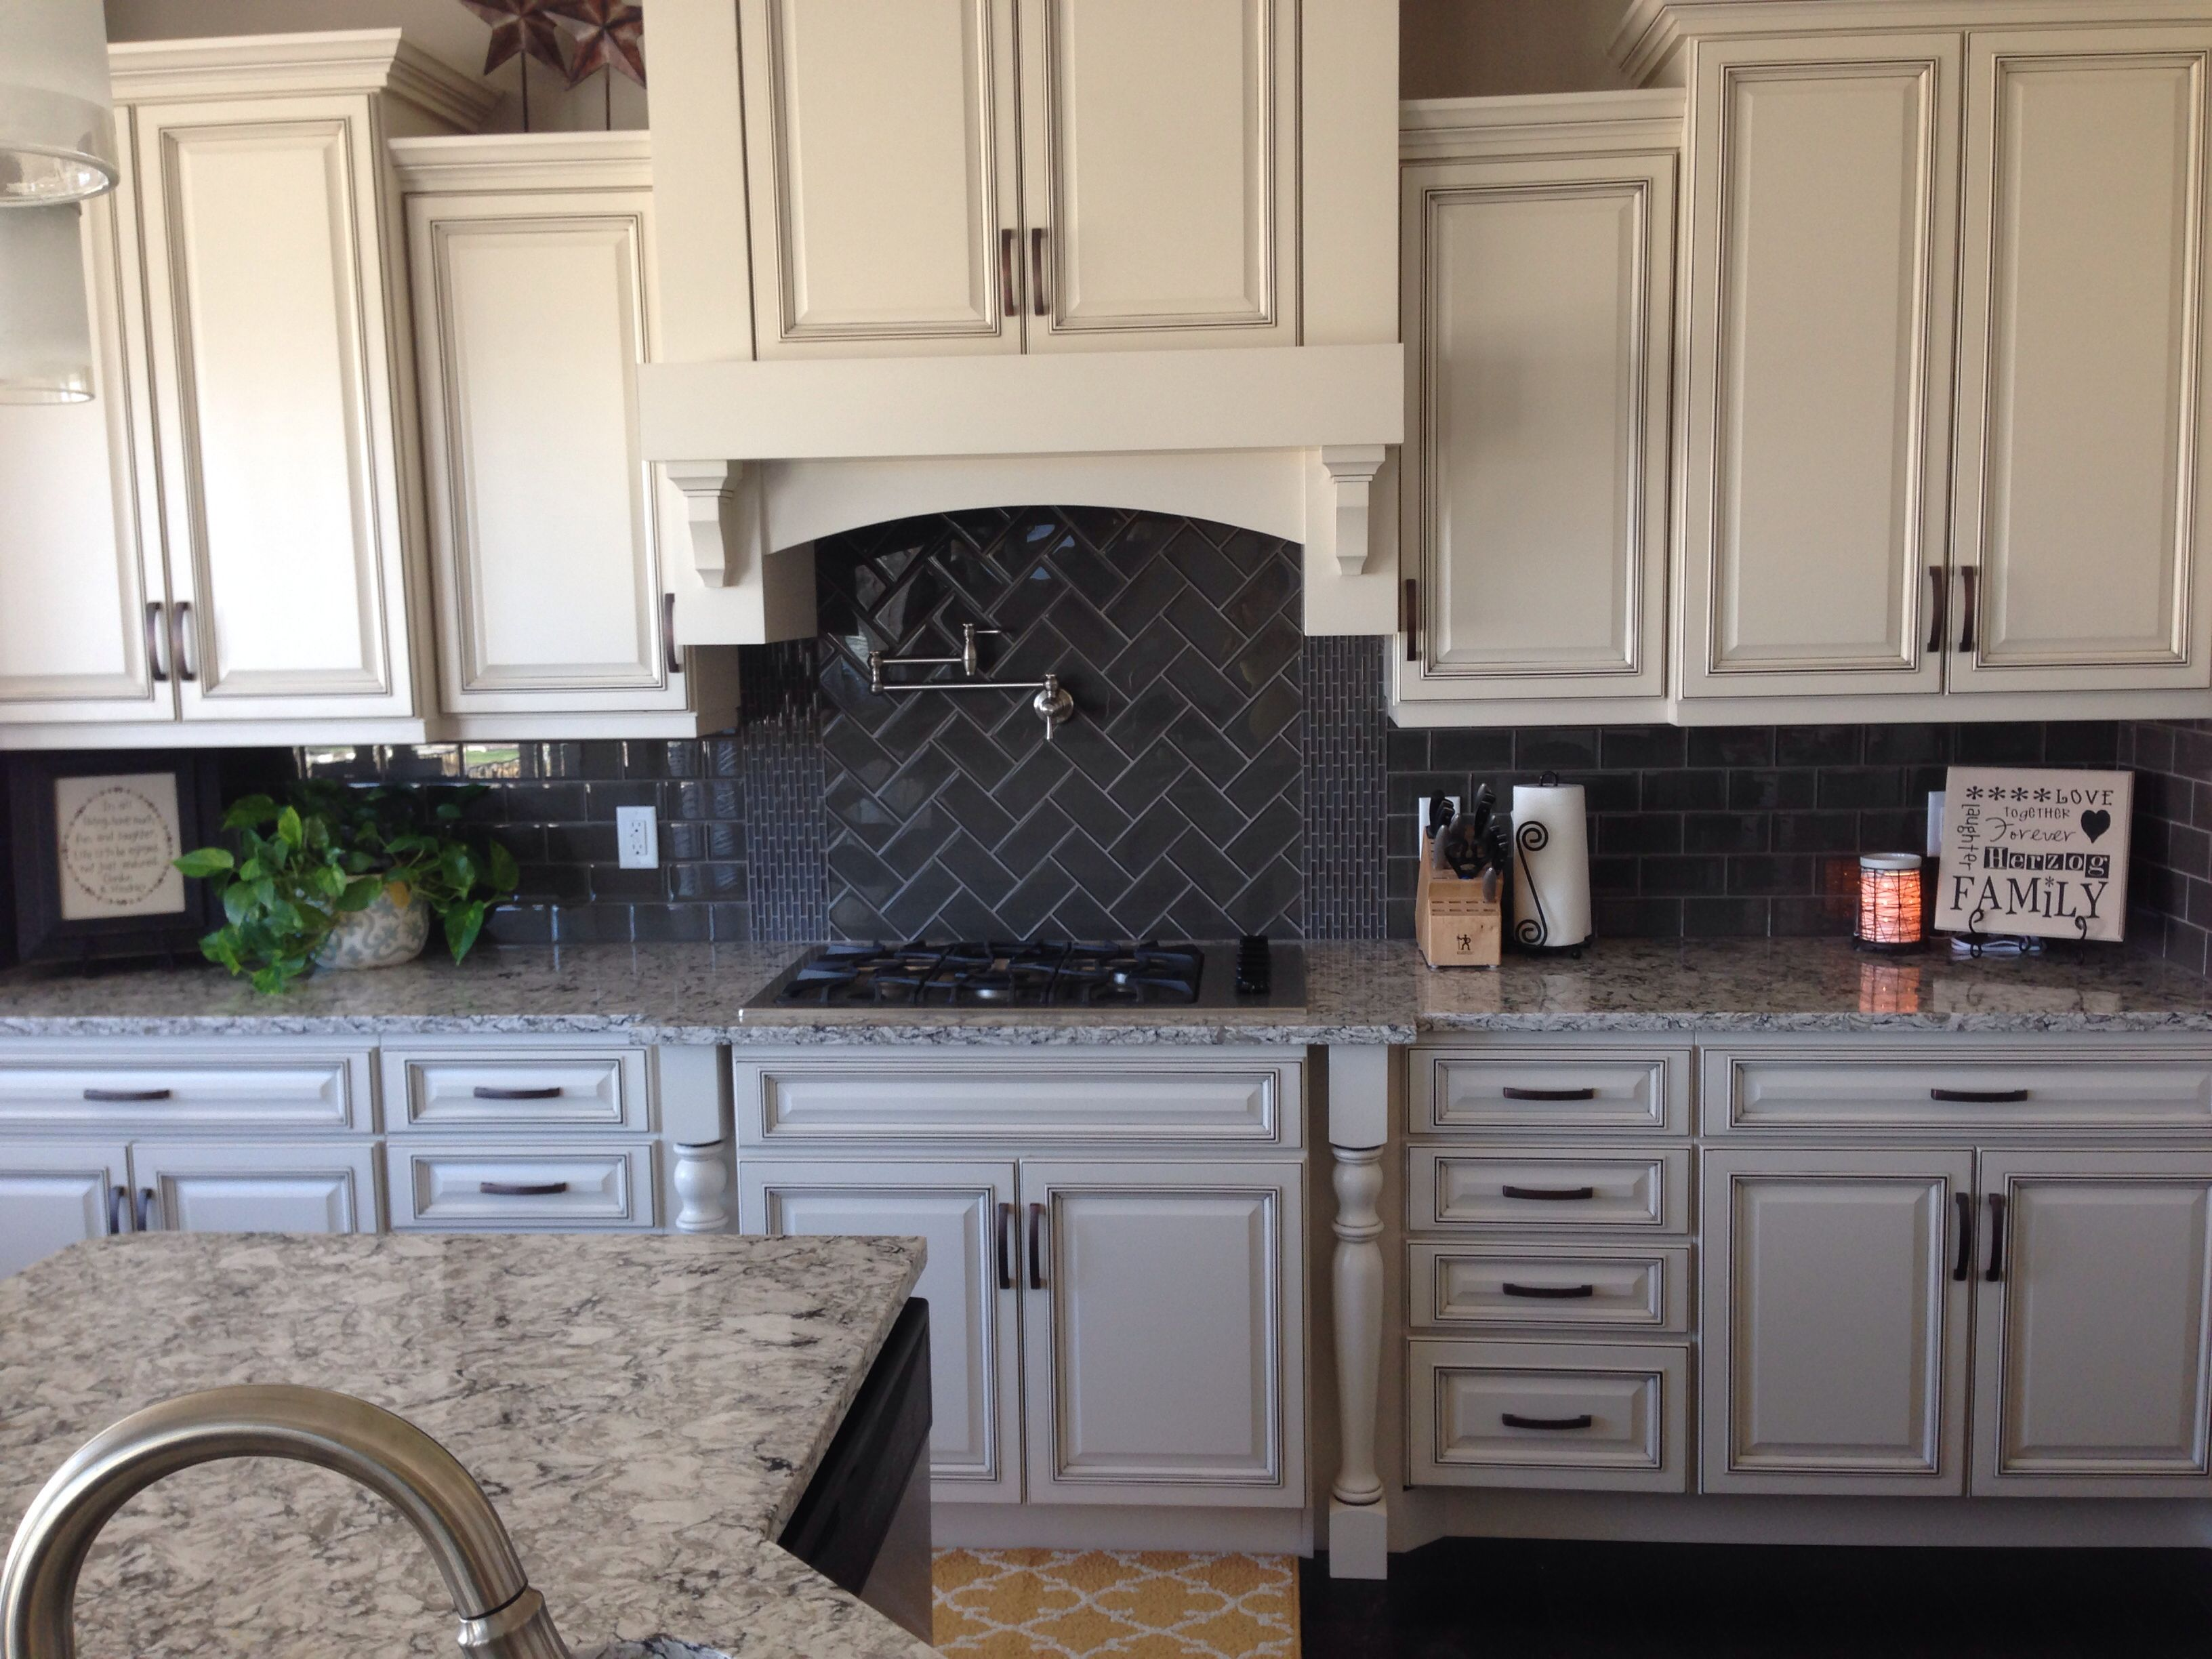 Glass subway tile backsplash with herringbone pattern